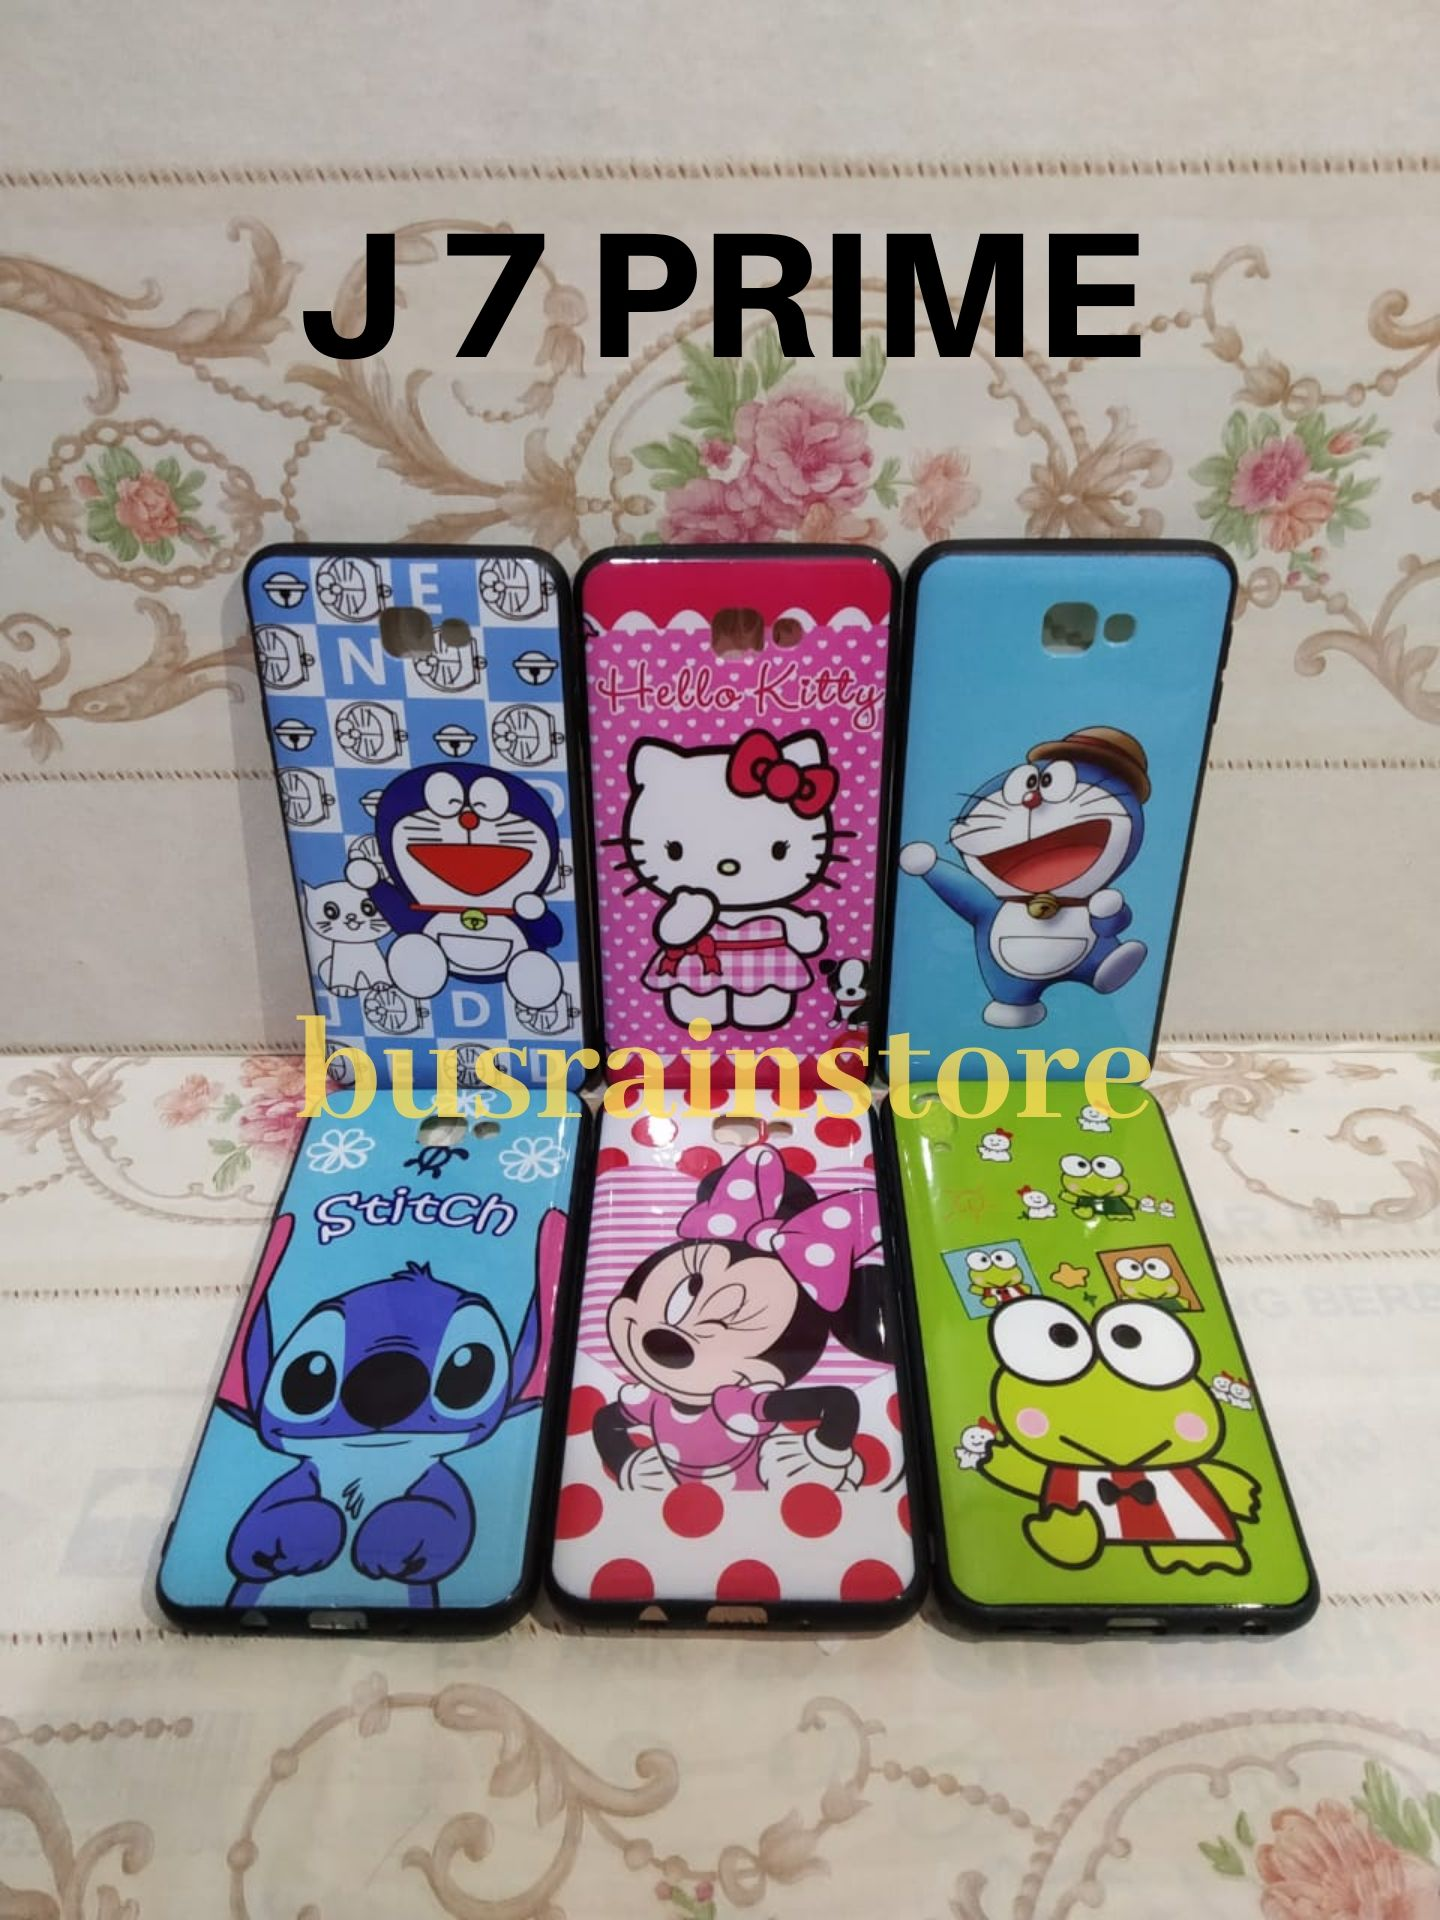 TPU SoftCase Karakter SAMSUNG J7 PRIME - CASSING SAMSUNG J7 PRIME - SILIKON SAMSUNG J7 PRIME KONDOM SAMSUNGJ7PRIME - SOFTCASE HP SAMSUNG J7 PRIME - KARAKTER DORAEMON HELLO KITTY CEROPY MICKEYMOUSE STICH LUCU HIGHT Quality Terbaik COD` BY-JW~COLLECTIONS